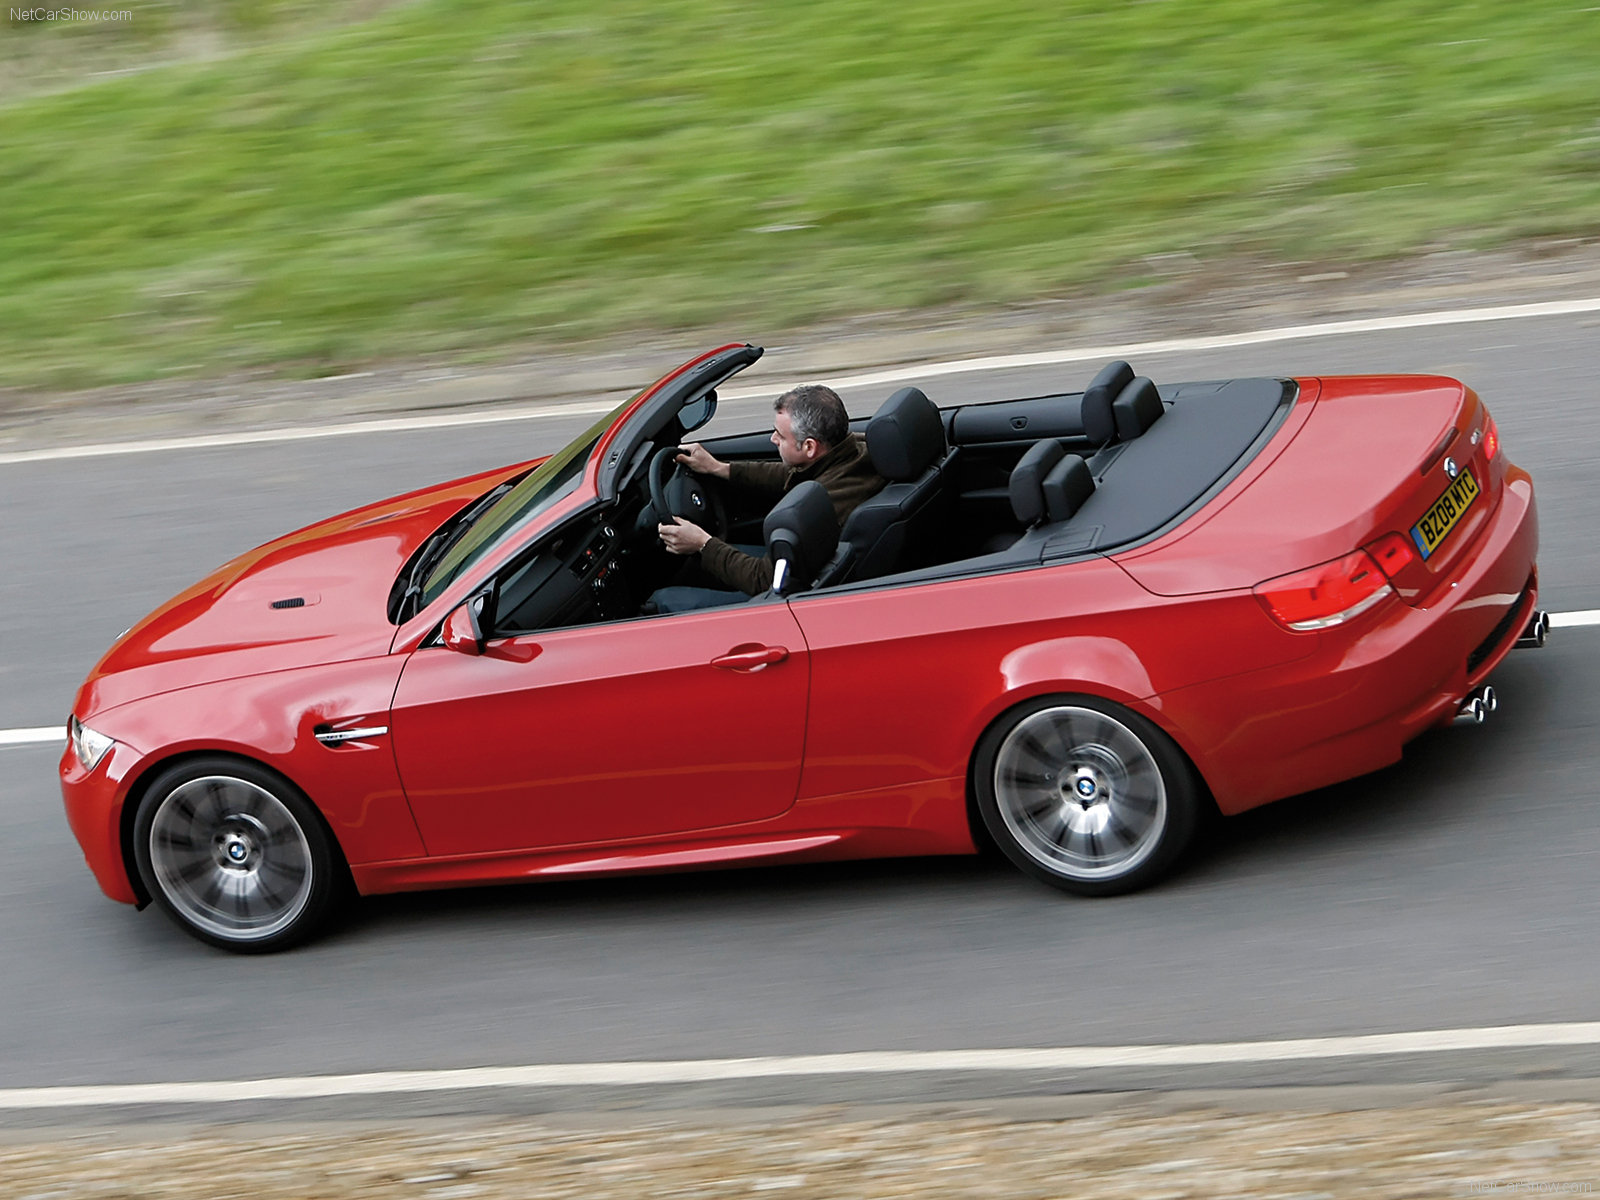 Bmw M3 E93 Convertible Picture 54396 Bmw Photo Gallery Carsbase Com